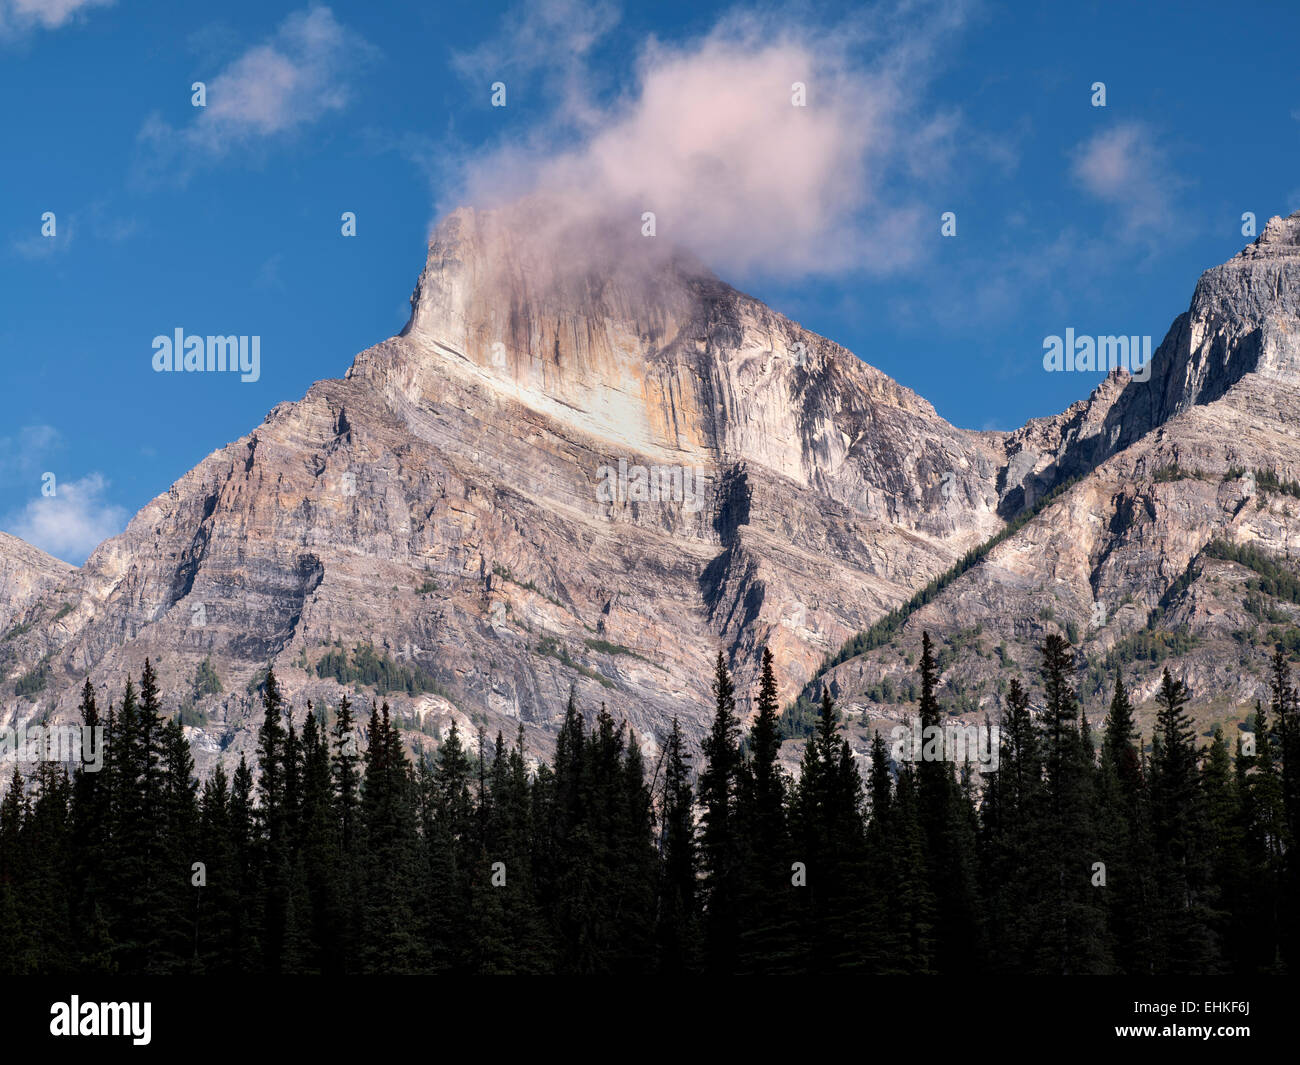 Silhouetted trees, mountain and  clouds. Banff National Park. Alberta, Canada - Stock Image